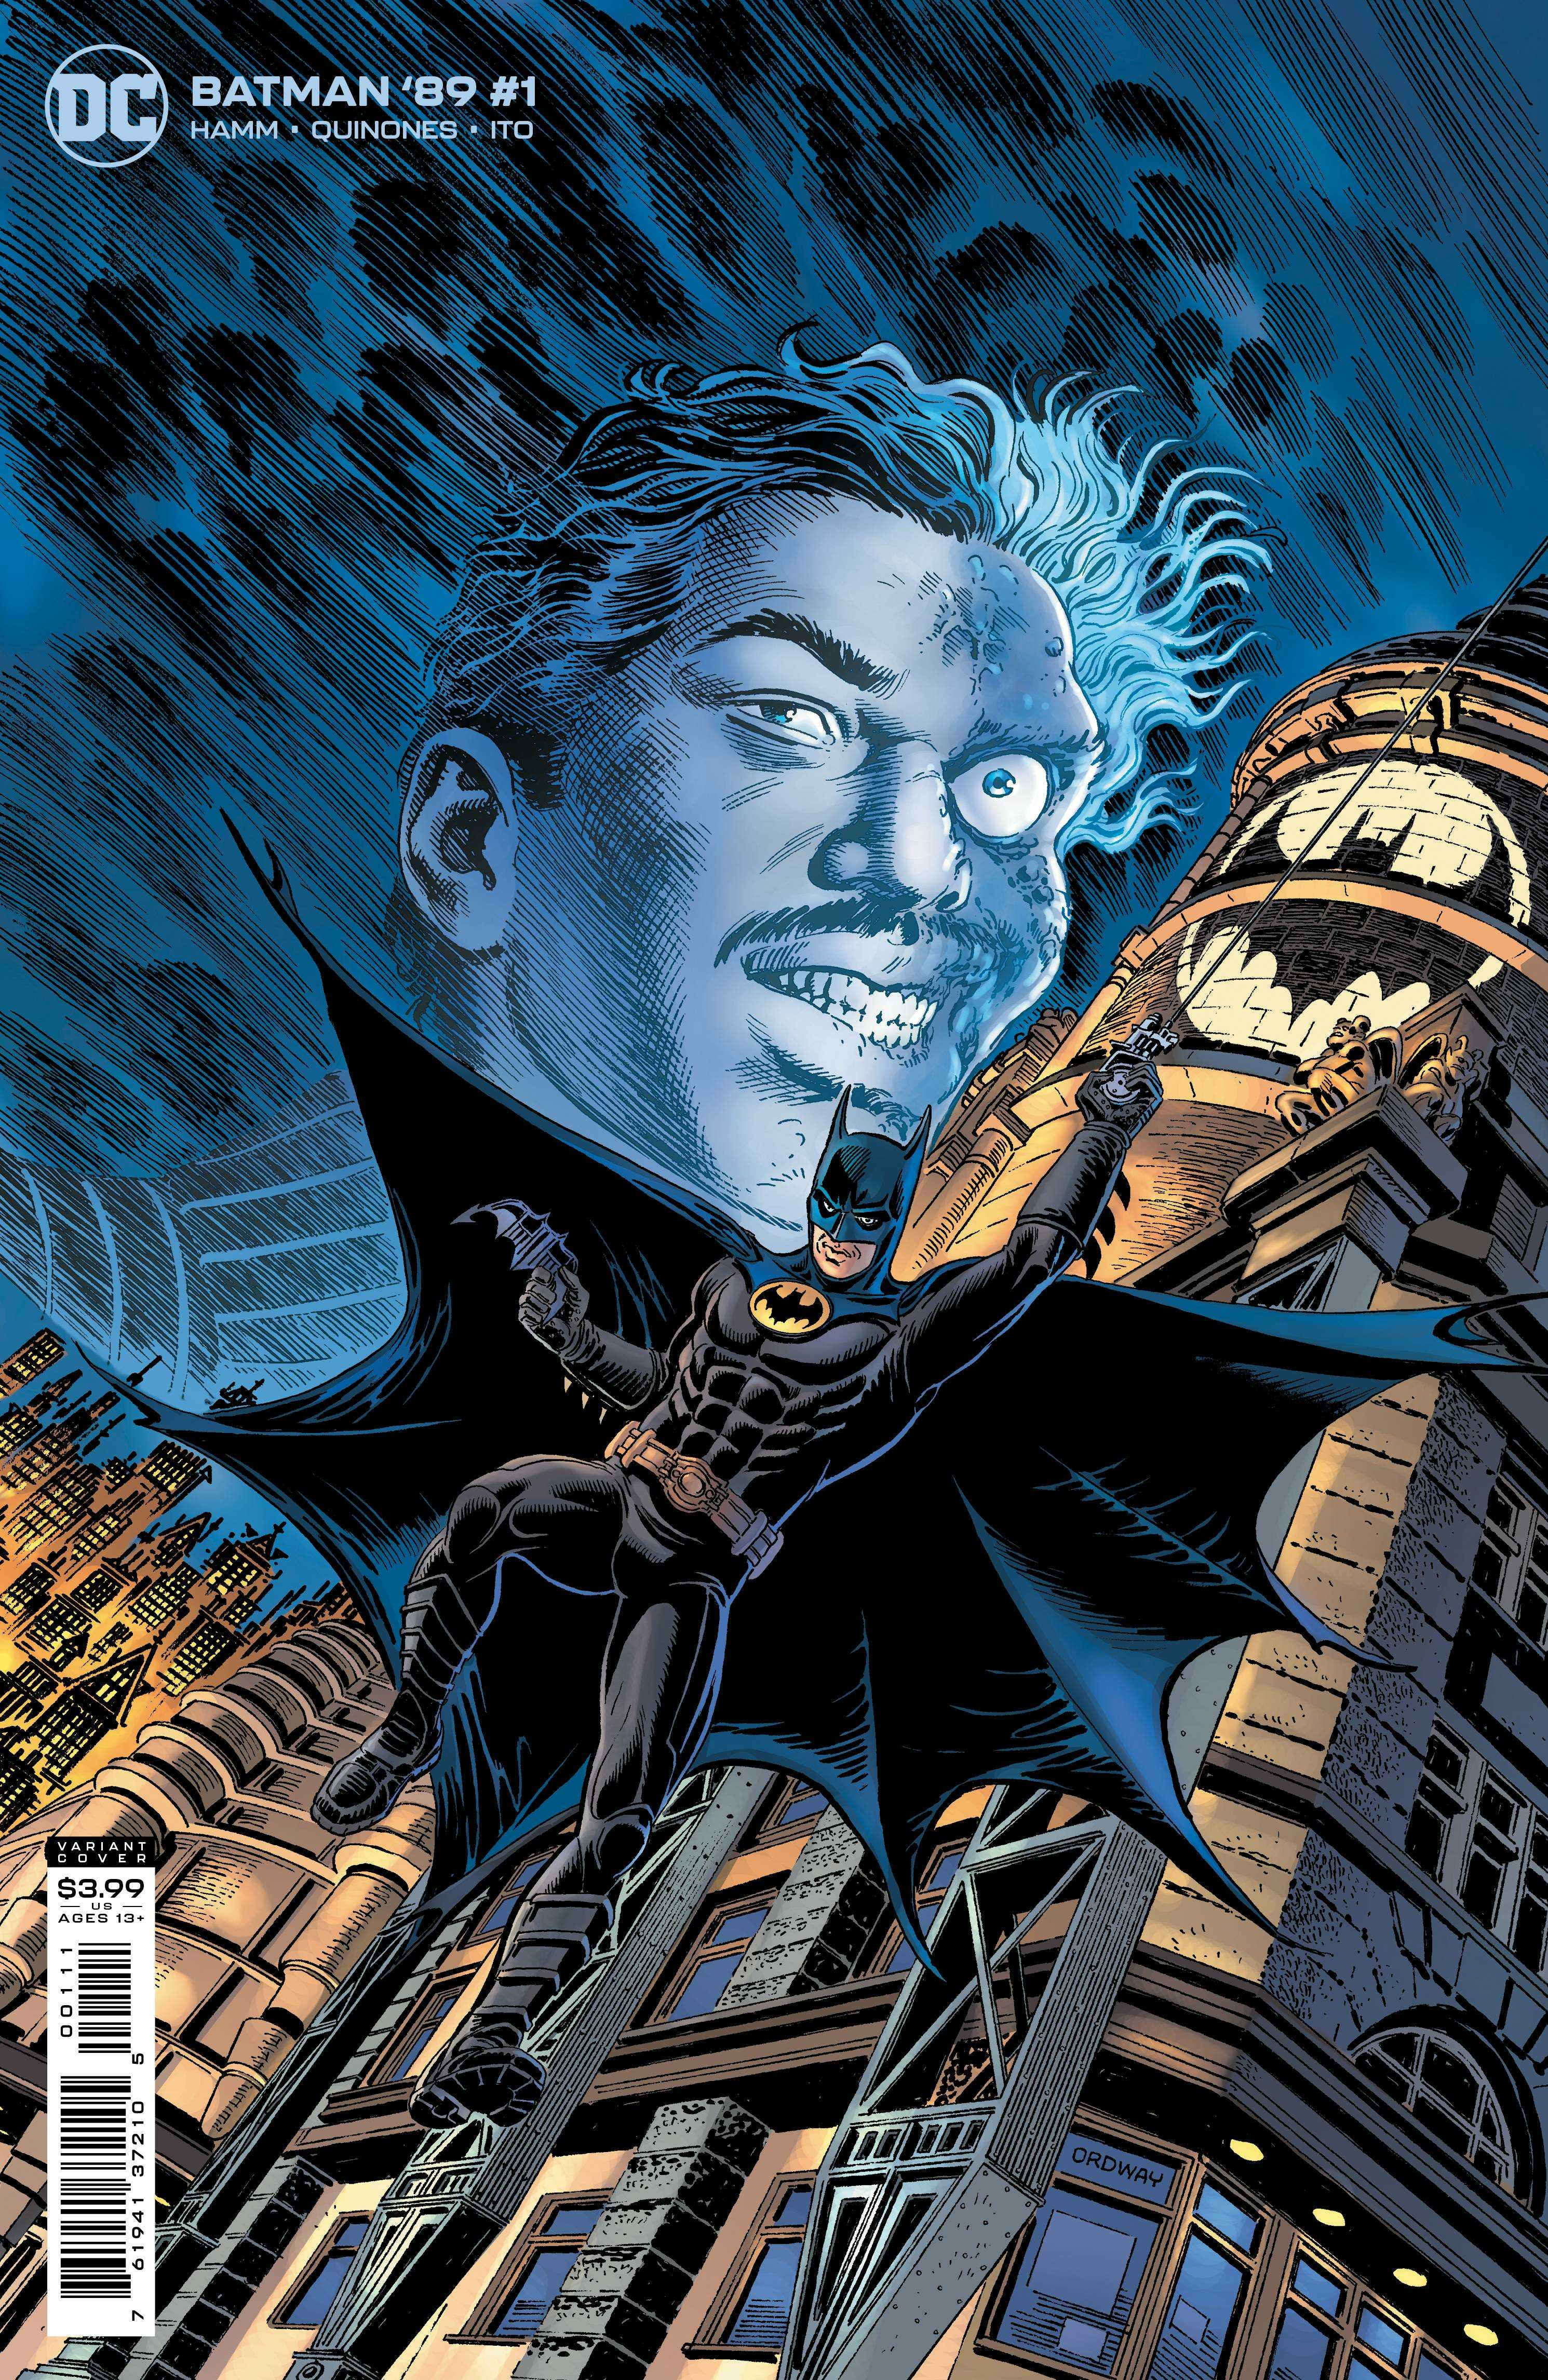 Batman '89 Issue One Variant Cover- Jerry Ordway